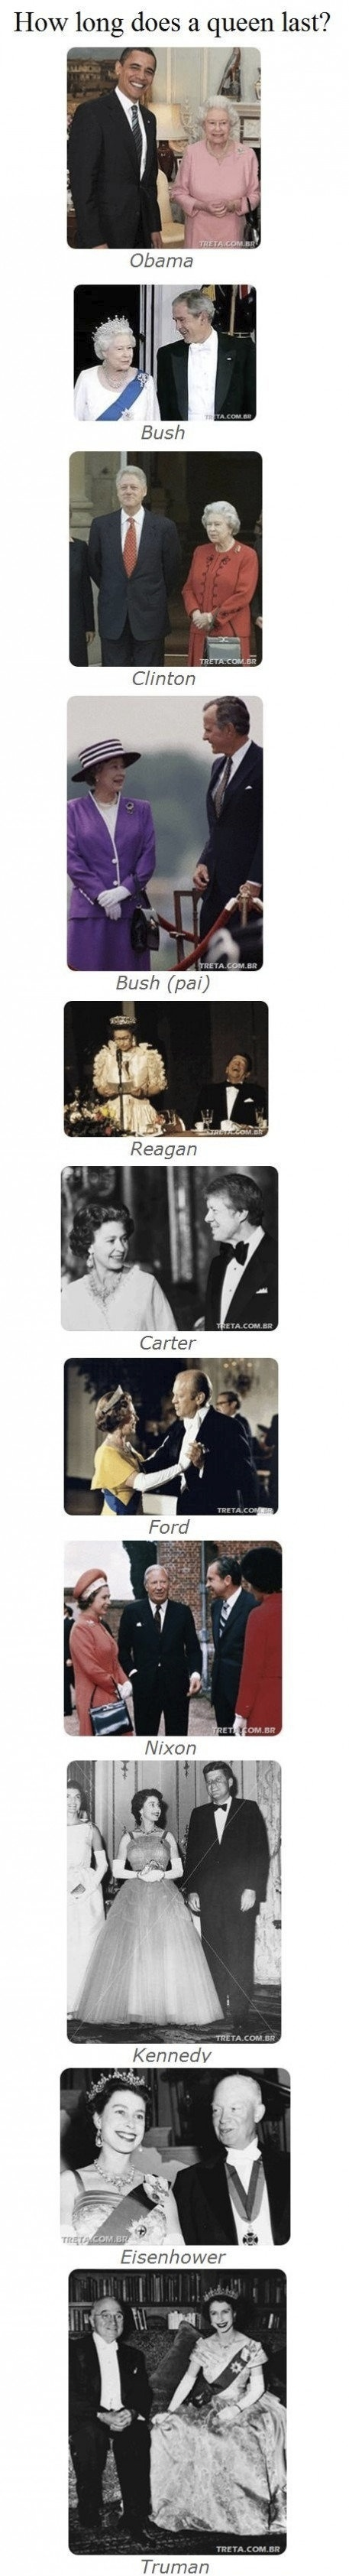 Queen Elizabeth and the many Presidents of the United States.